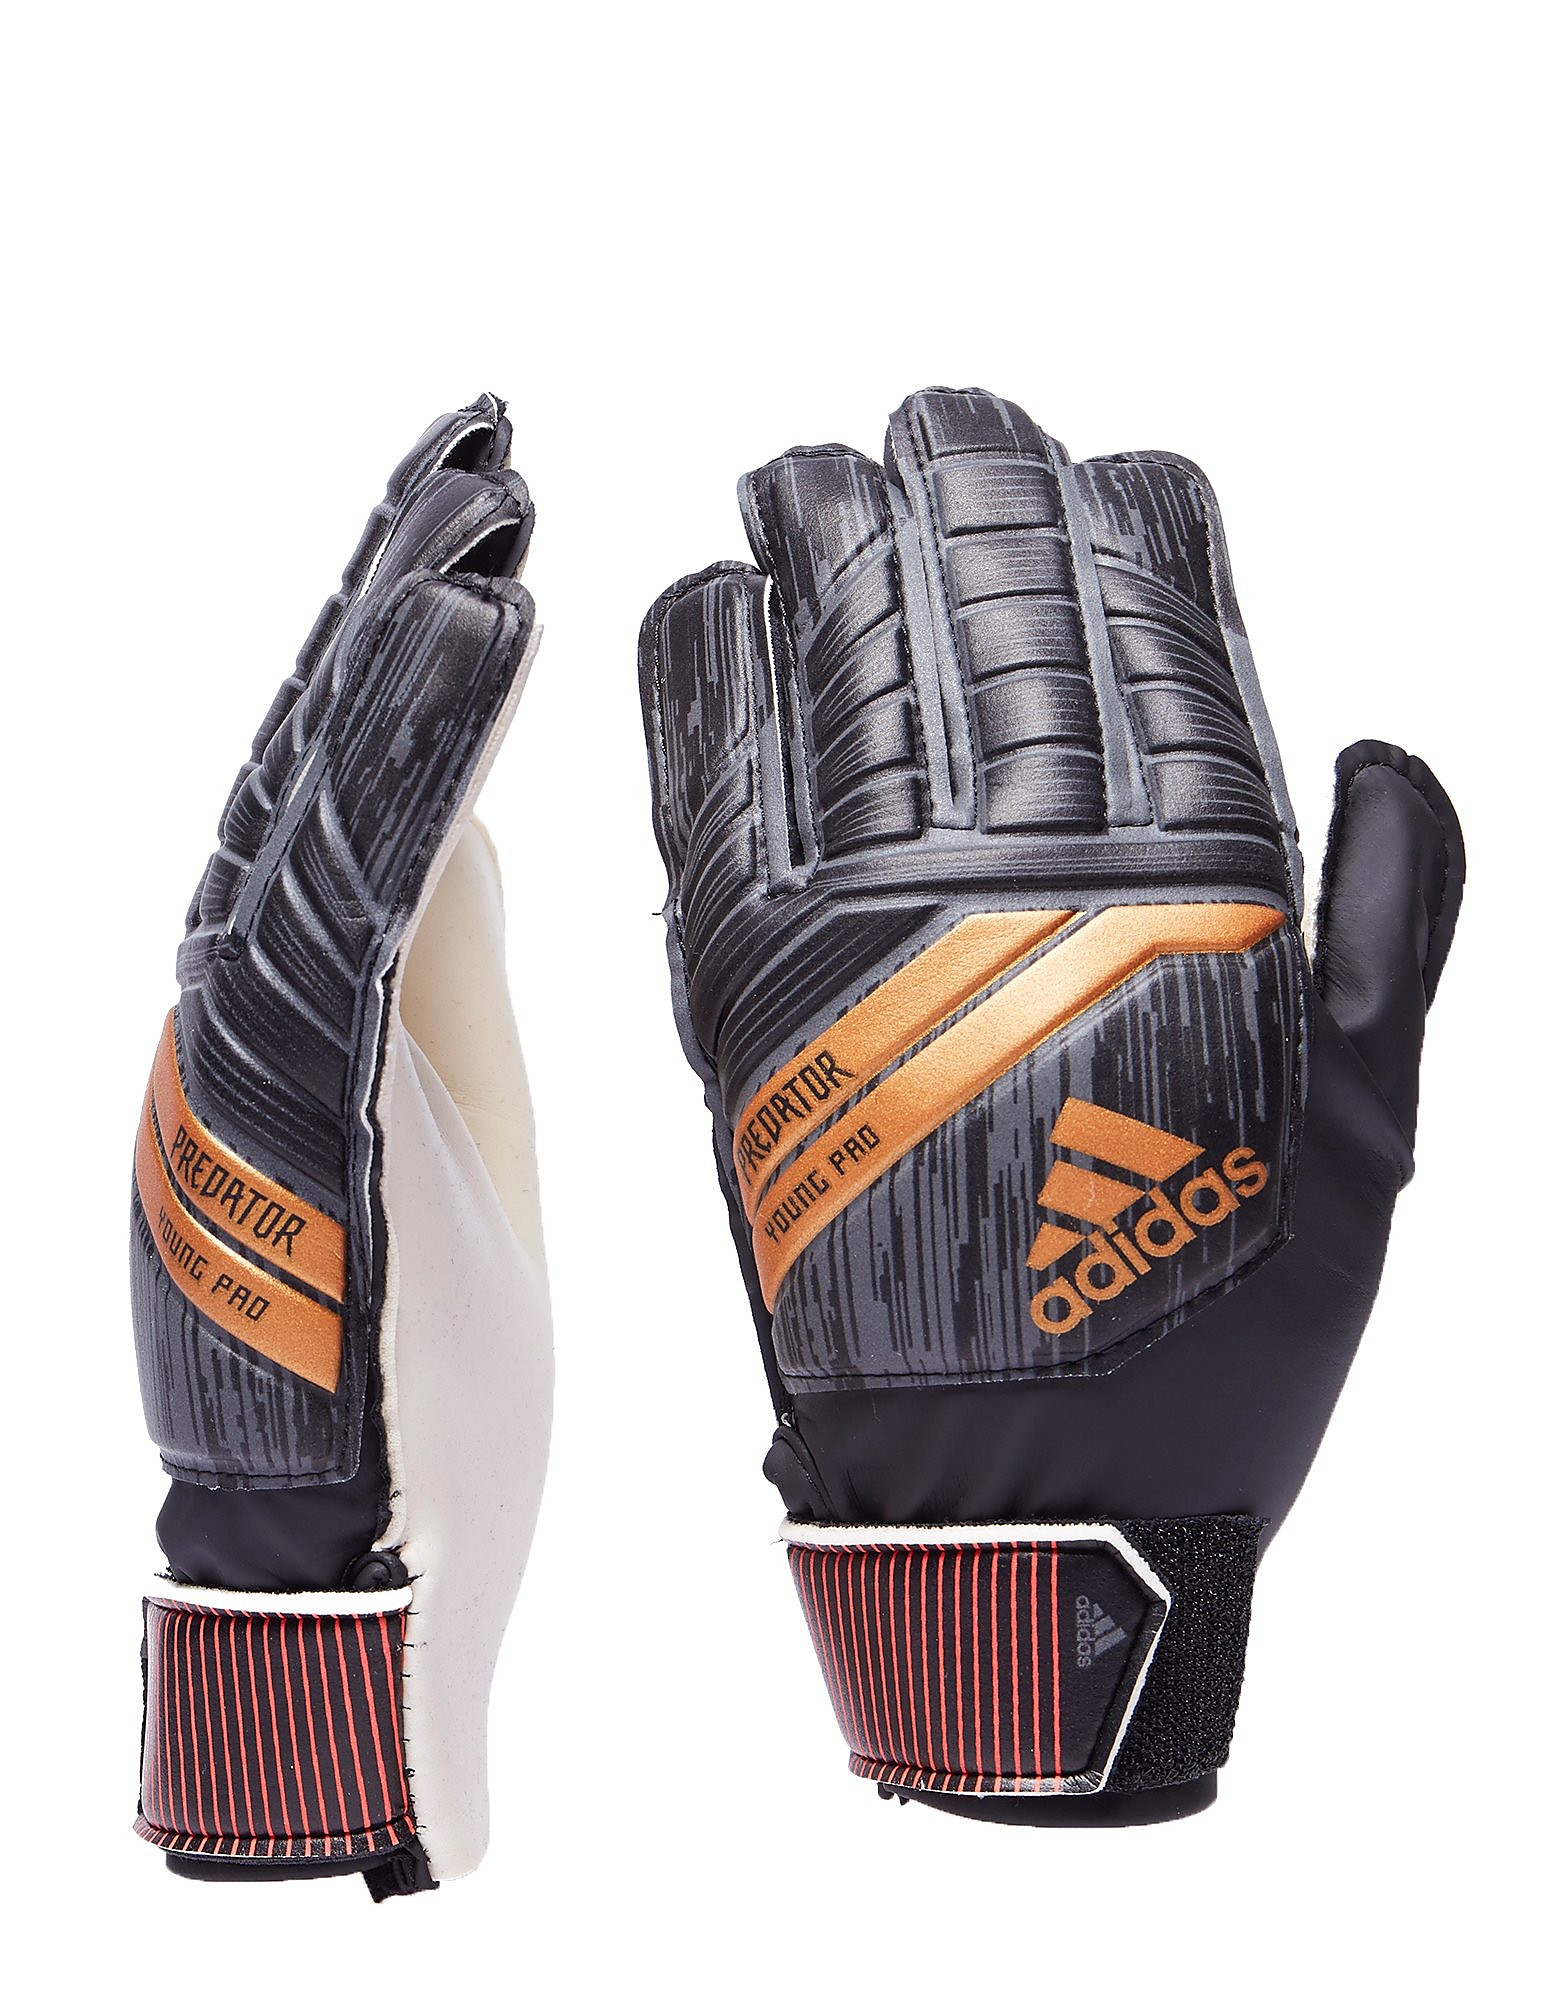 adidas Predator 18 Young Pro Goalkeeper Gloves Junior